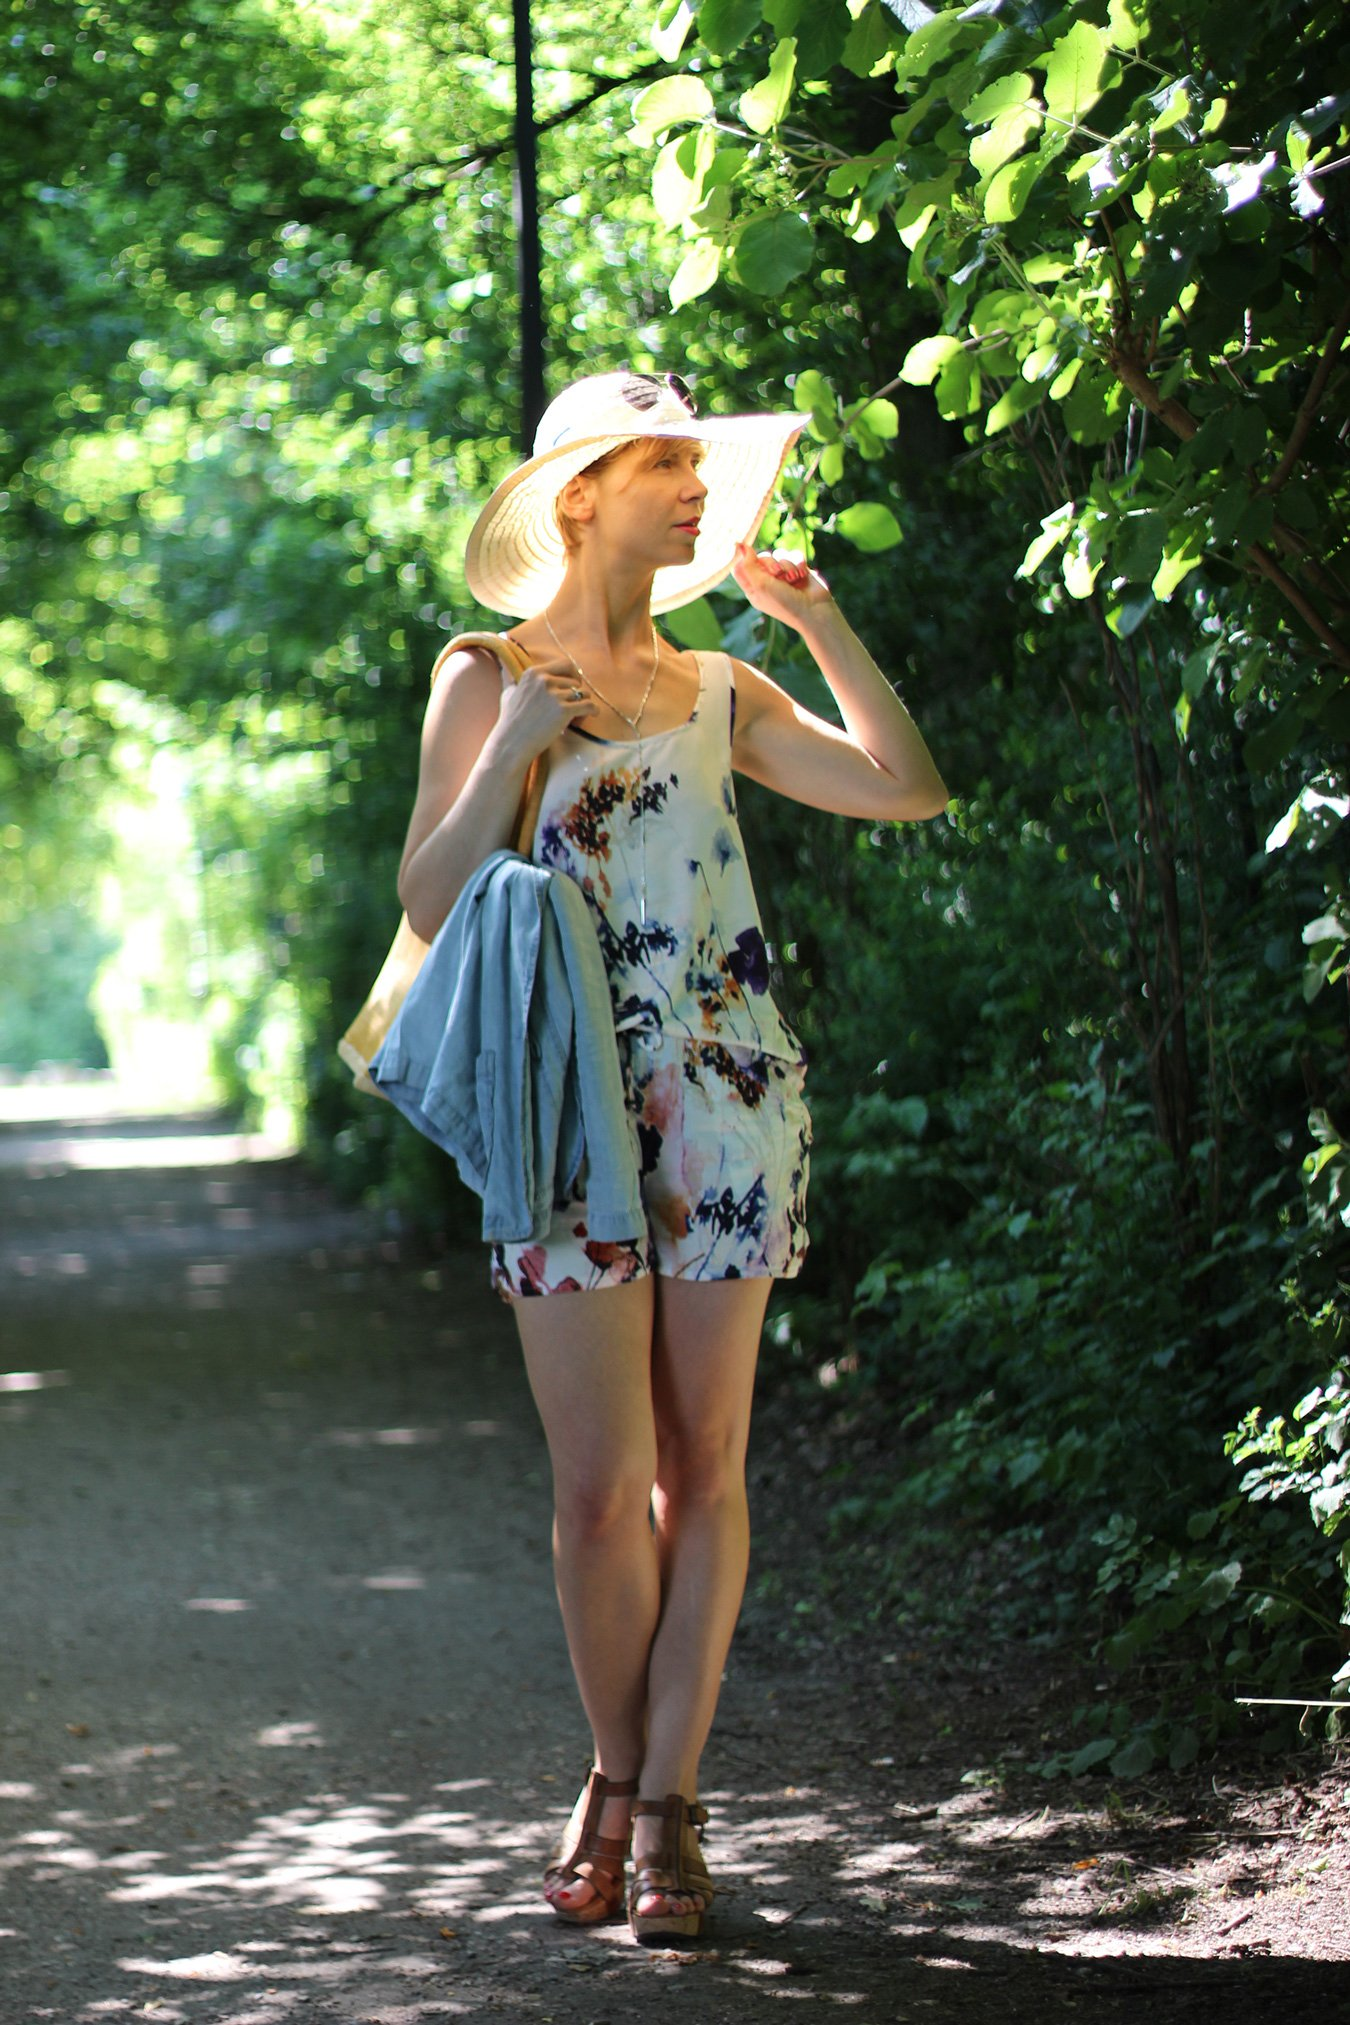 IMG_5993a_Only_Shorts_zweiteiler_Sommer_Fashion_AHemadundaHos_Conny